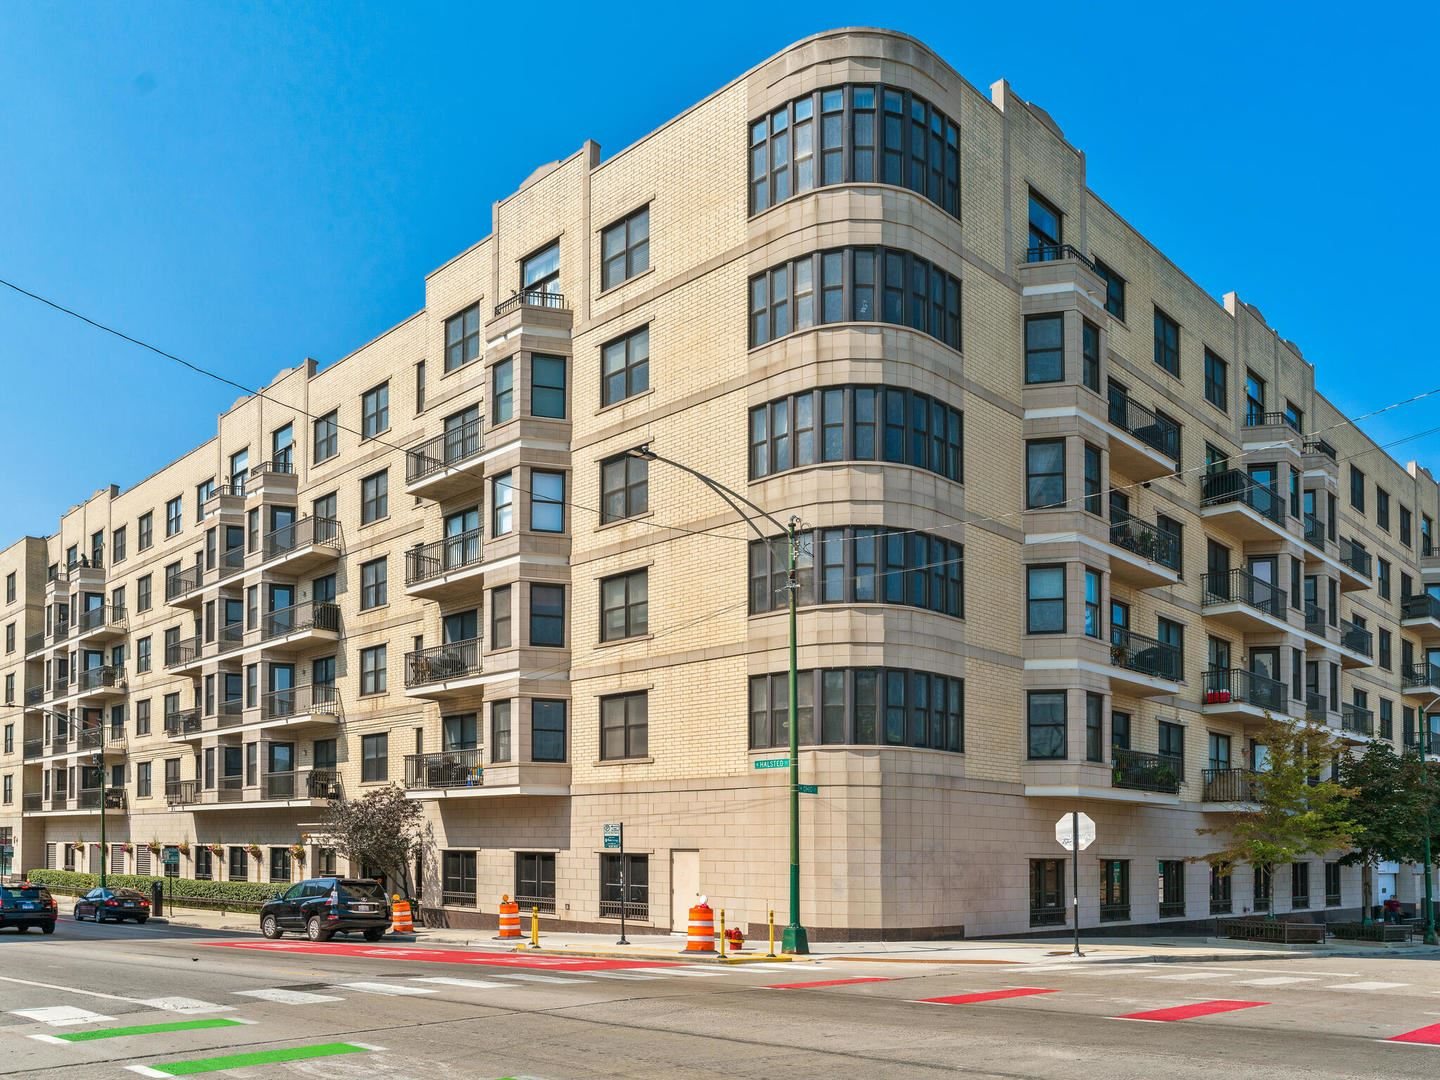 520 N HALSTED Street #516, Chicago, IL 60642 - #: 11237382